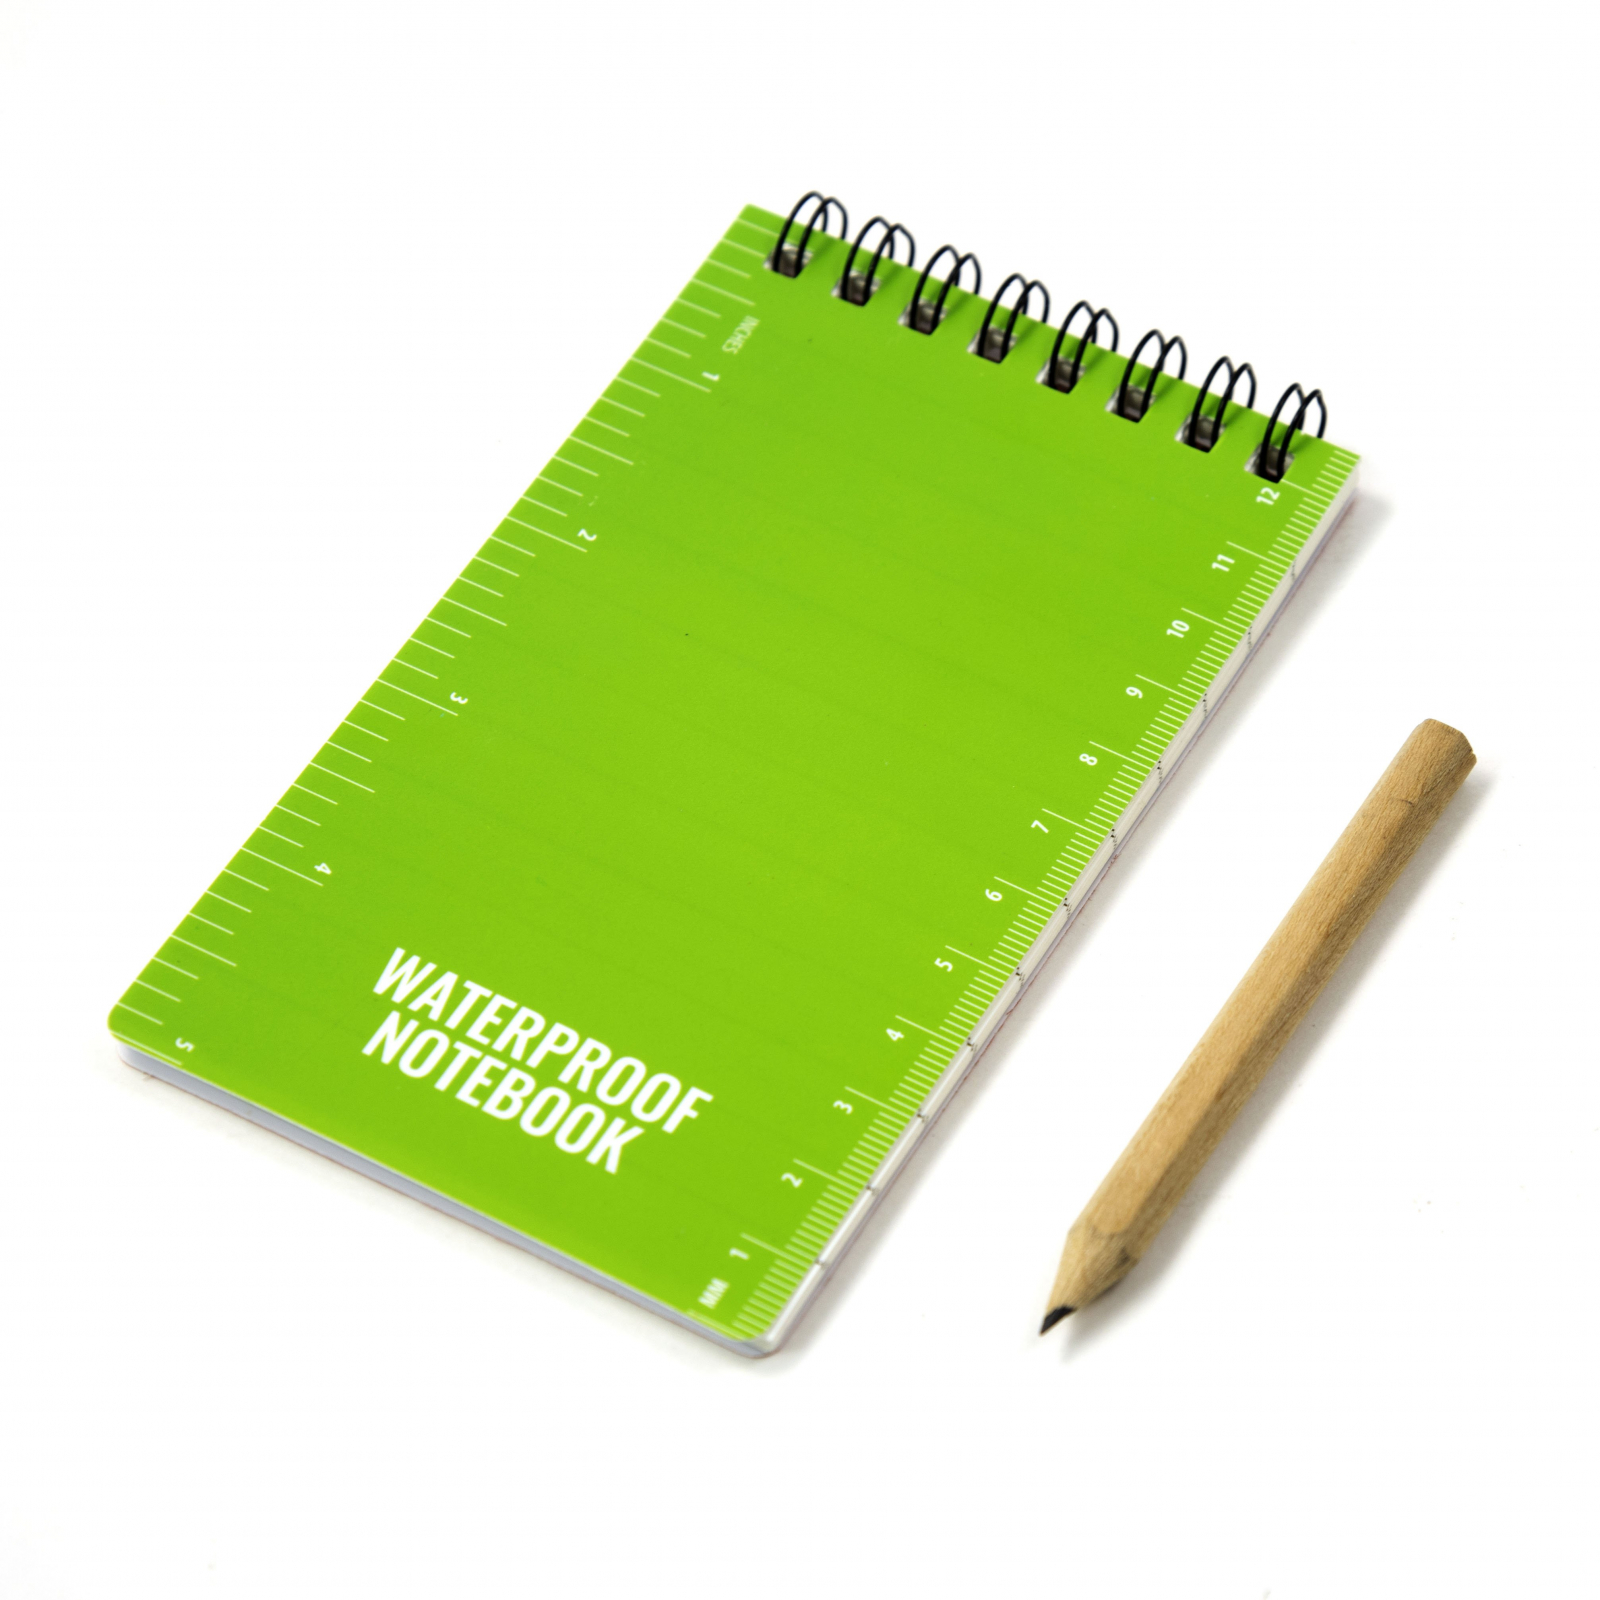 ASR Outdoor Waterproof Paper Pocket Spiral Notebook Travel Journal Field Notes Notepad with Pencil, Green, 50 Page Lined